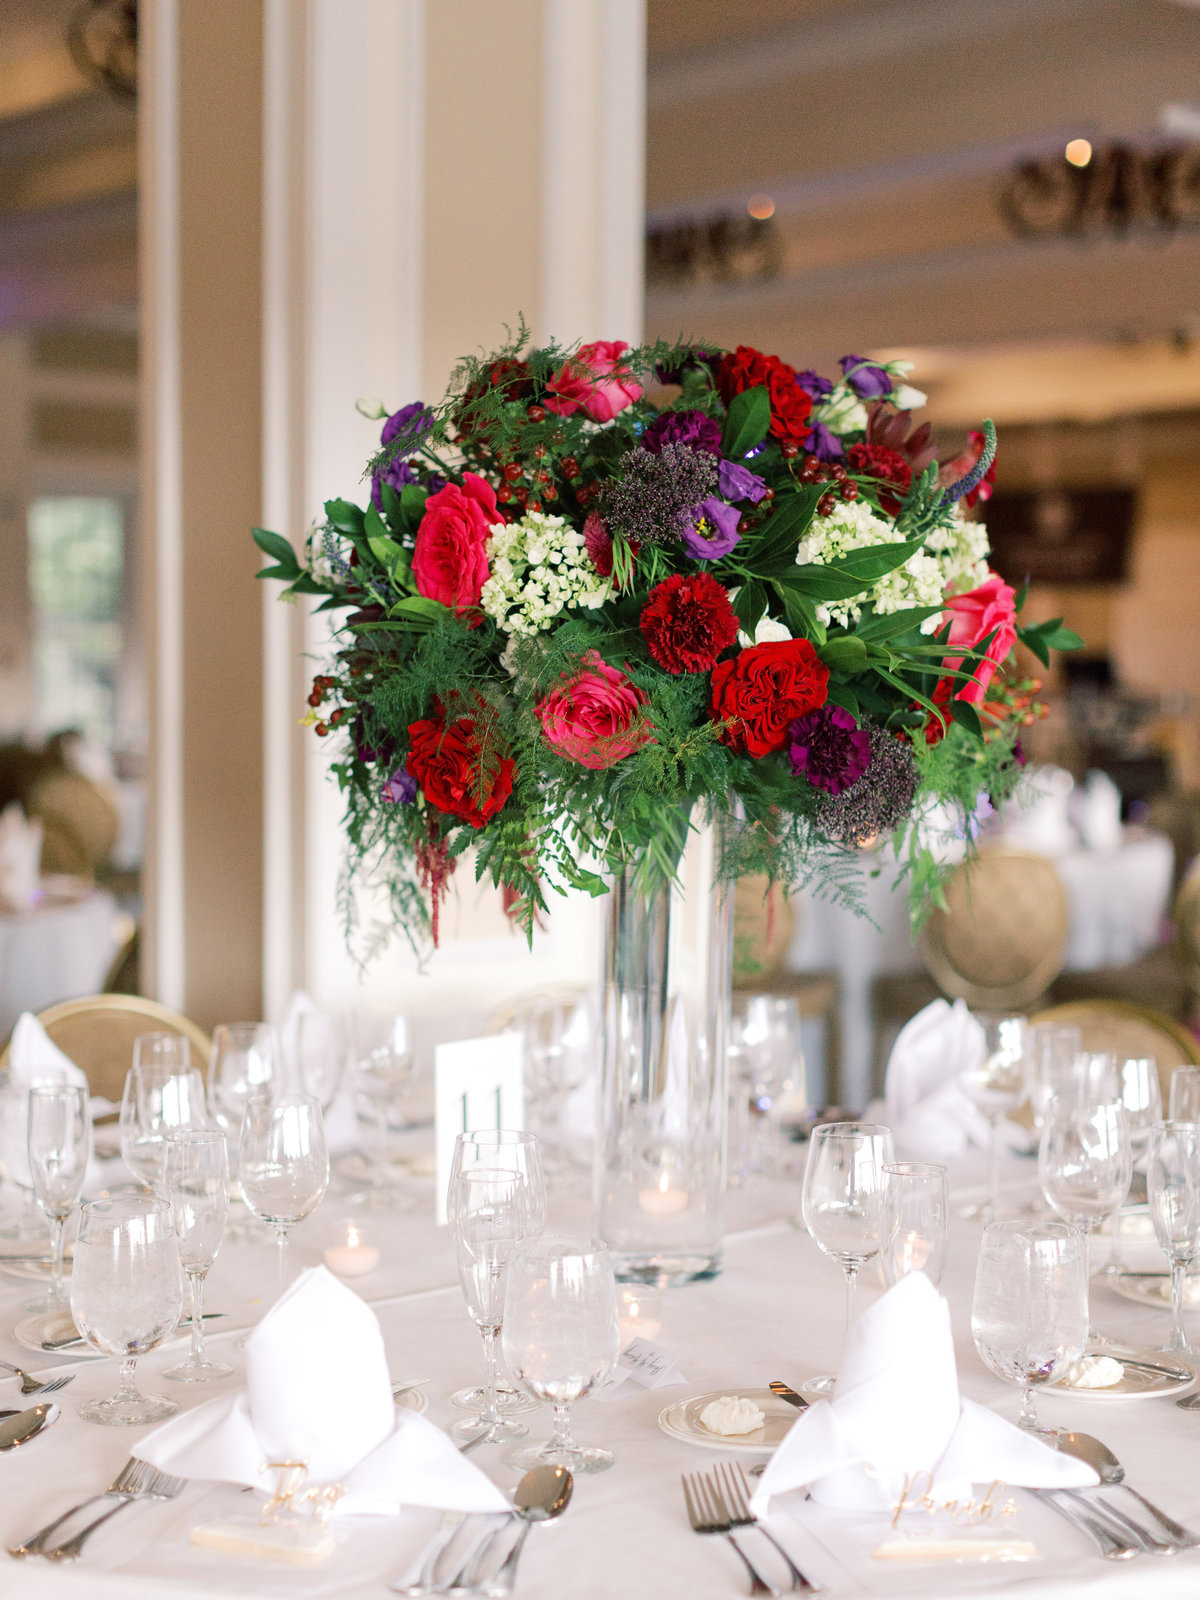 Jewel tone wedding at the Country Club of Fairfax